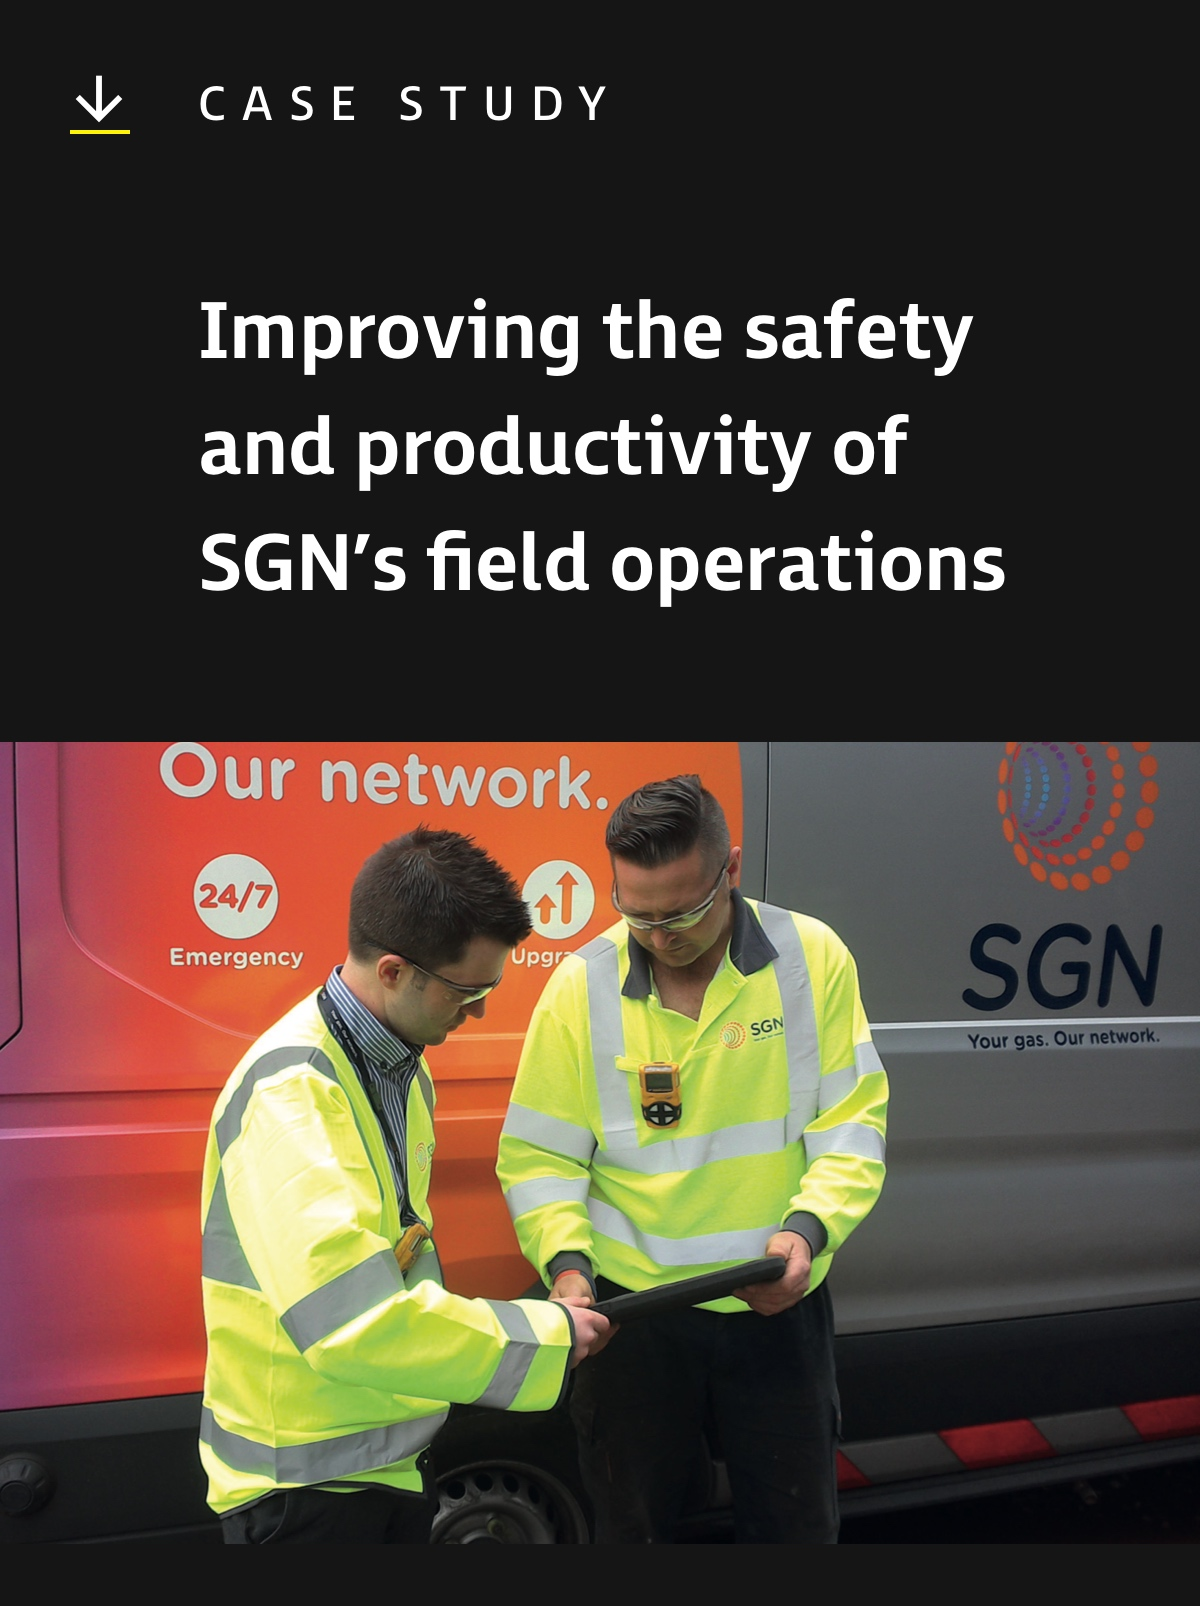 Improving the safety and productivity of SGN's field operations